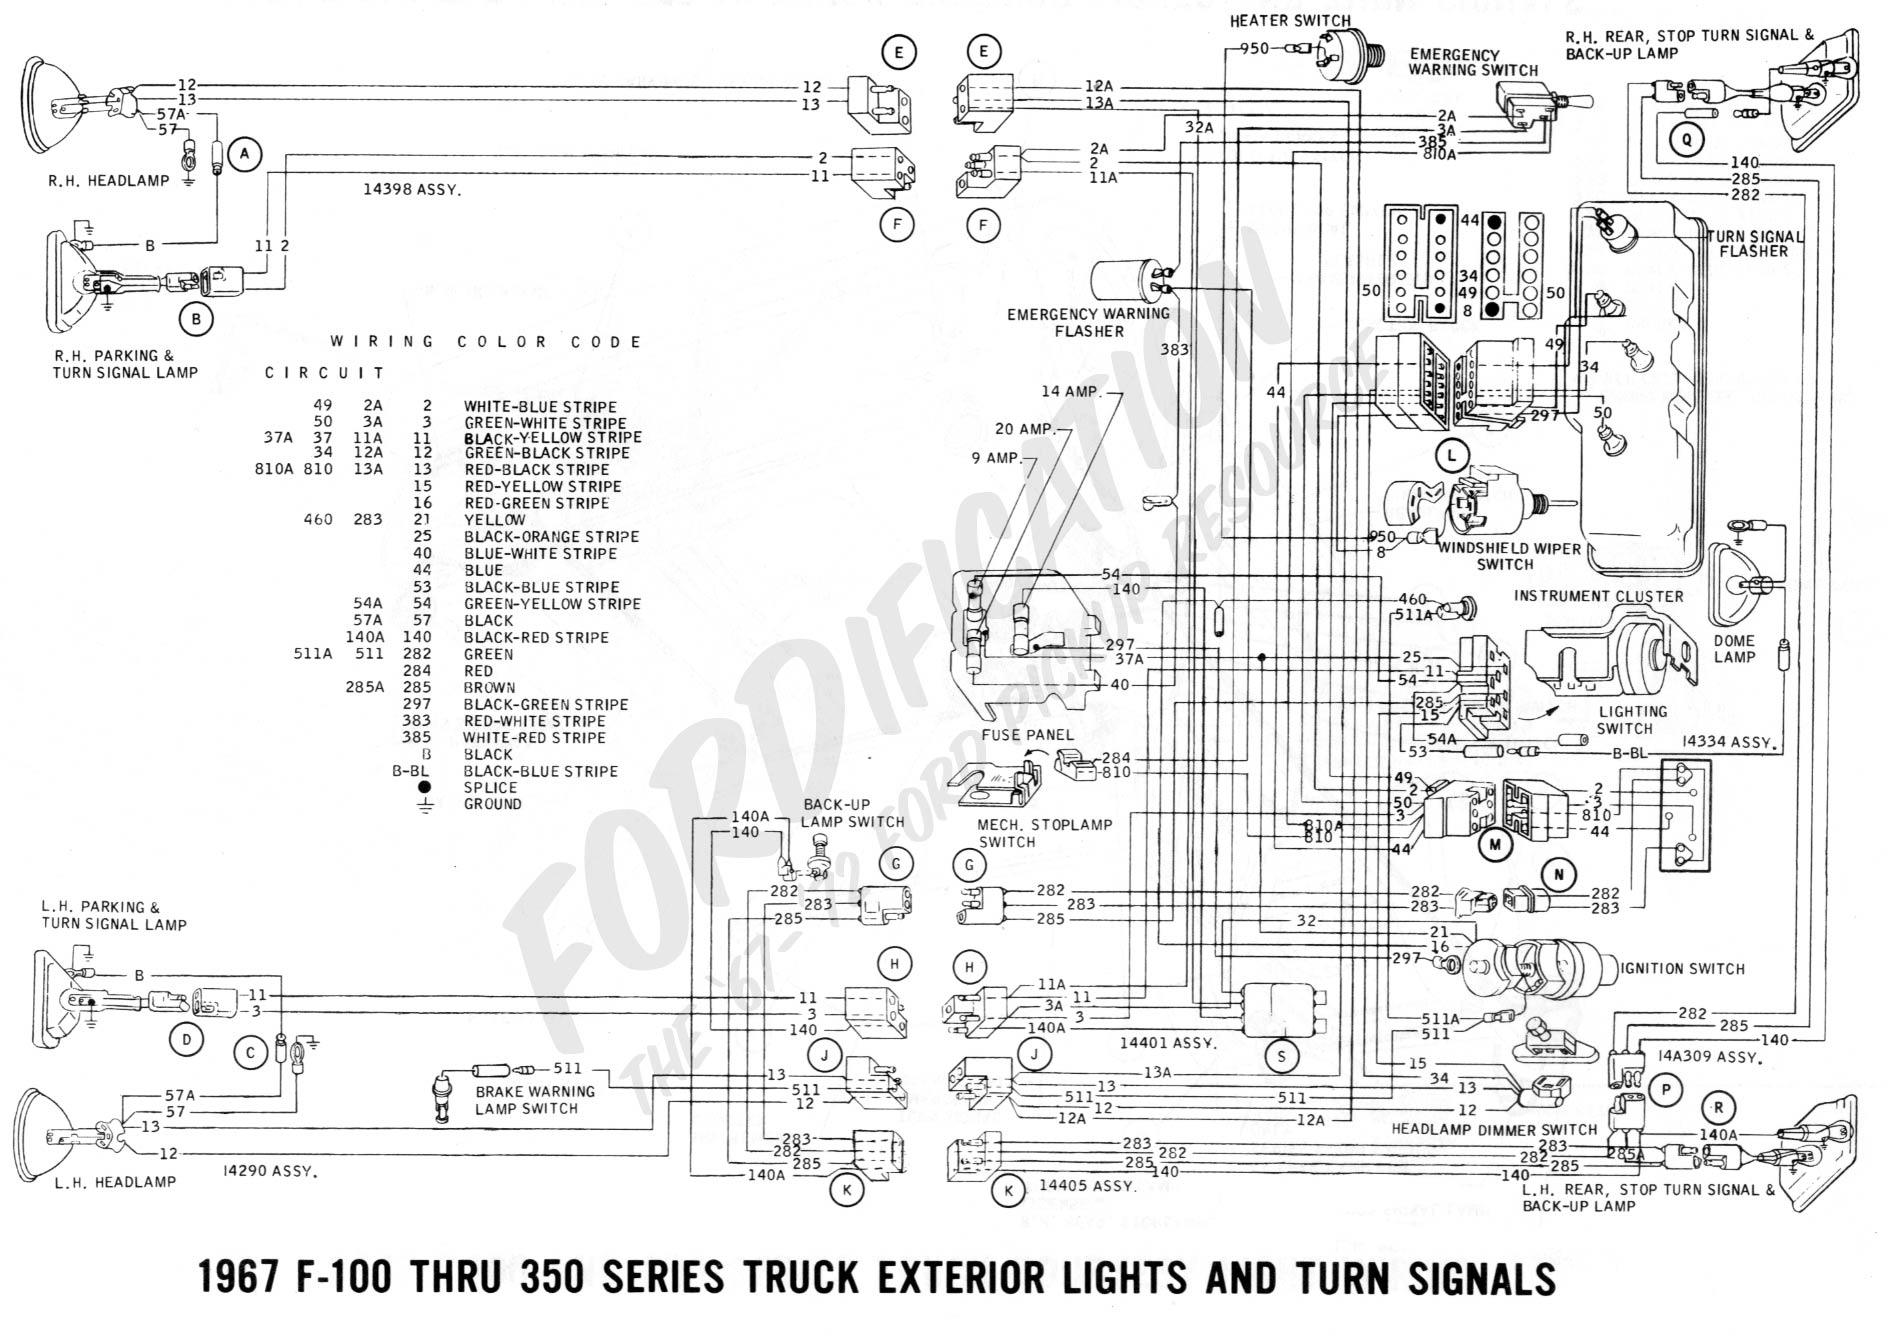 1988 Ford F150 Radio Wiring Diagram from www.fordification.com